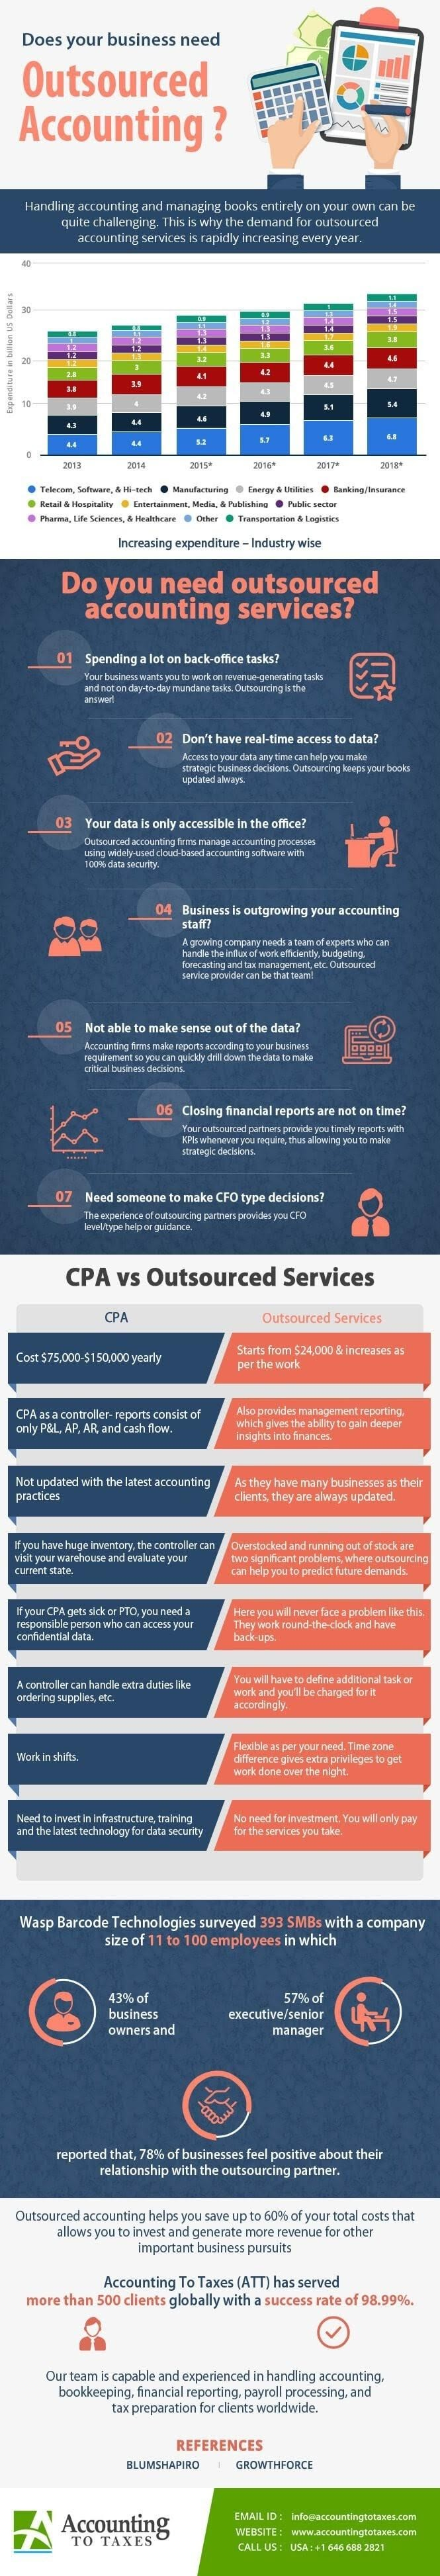 Does your Business Need Outsourced Accounting? #infographic